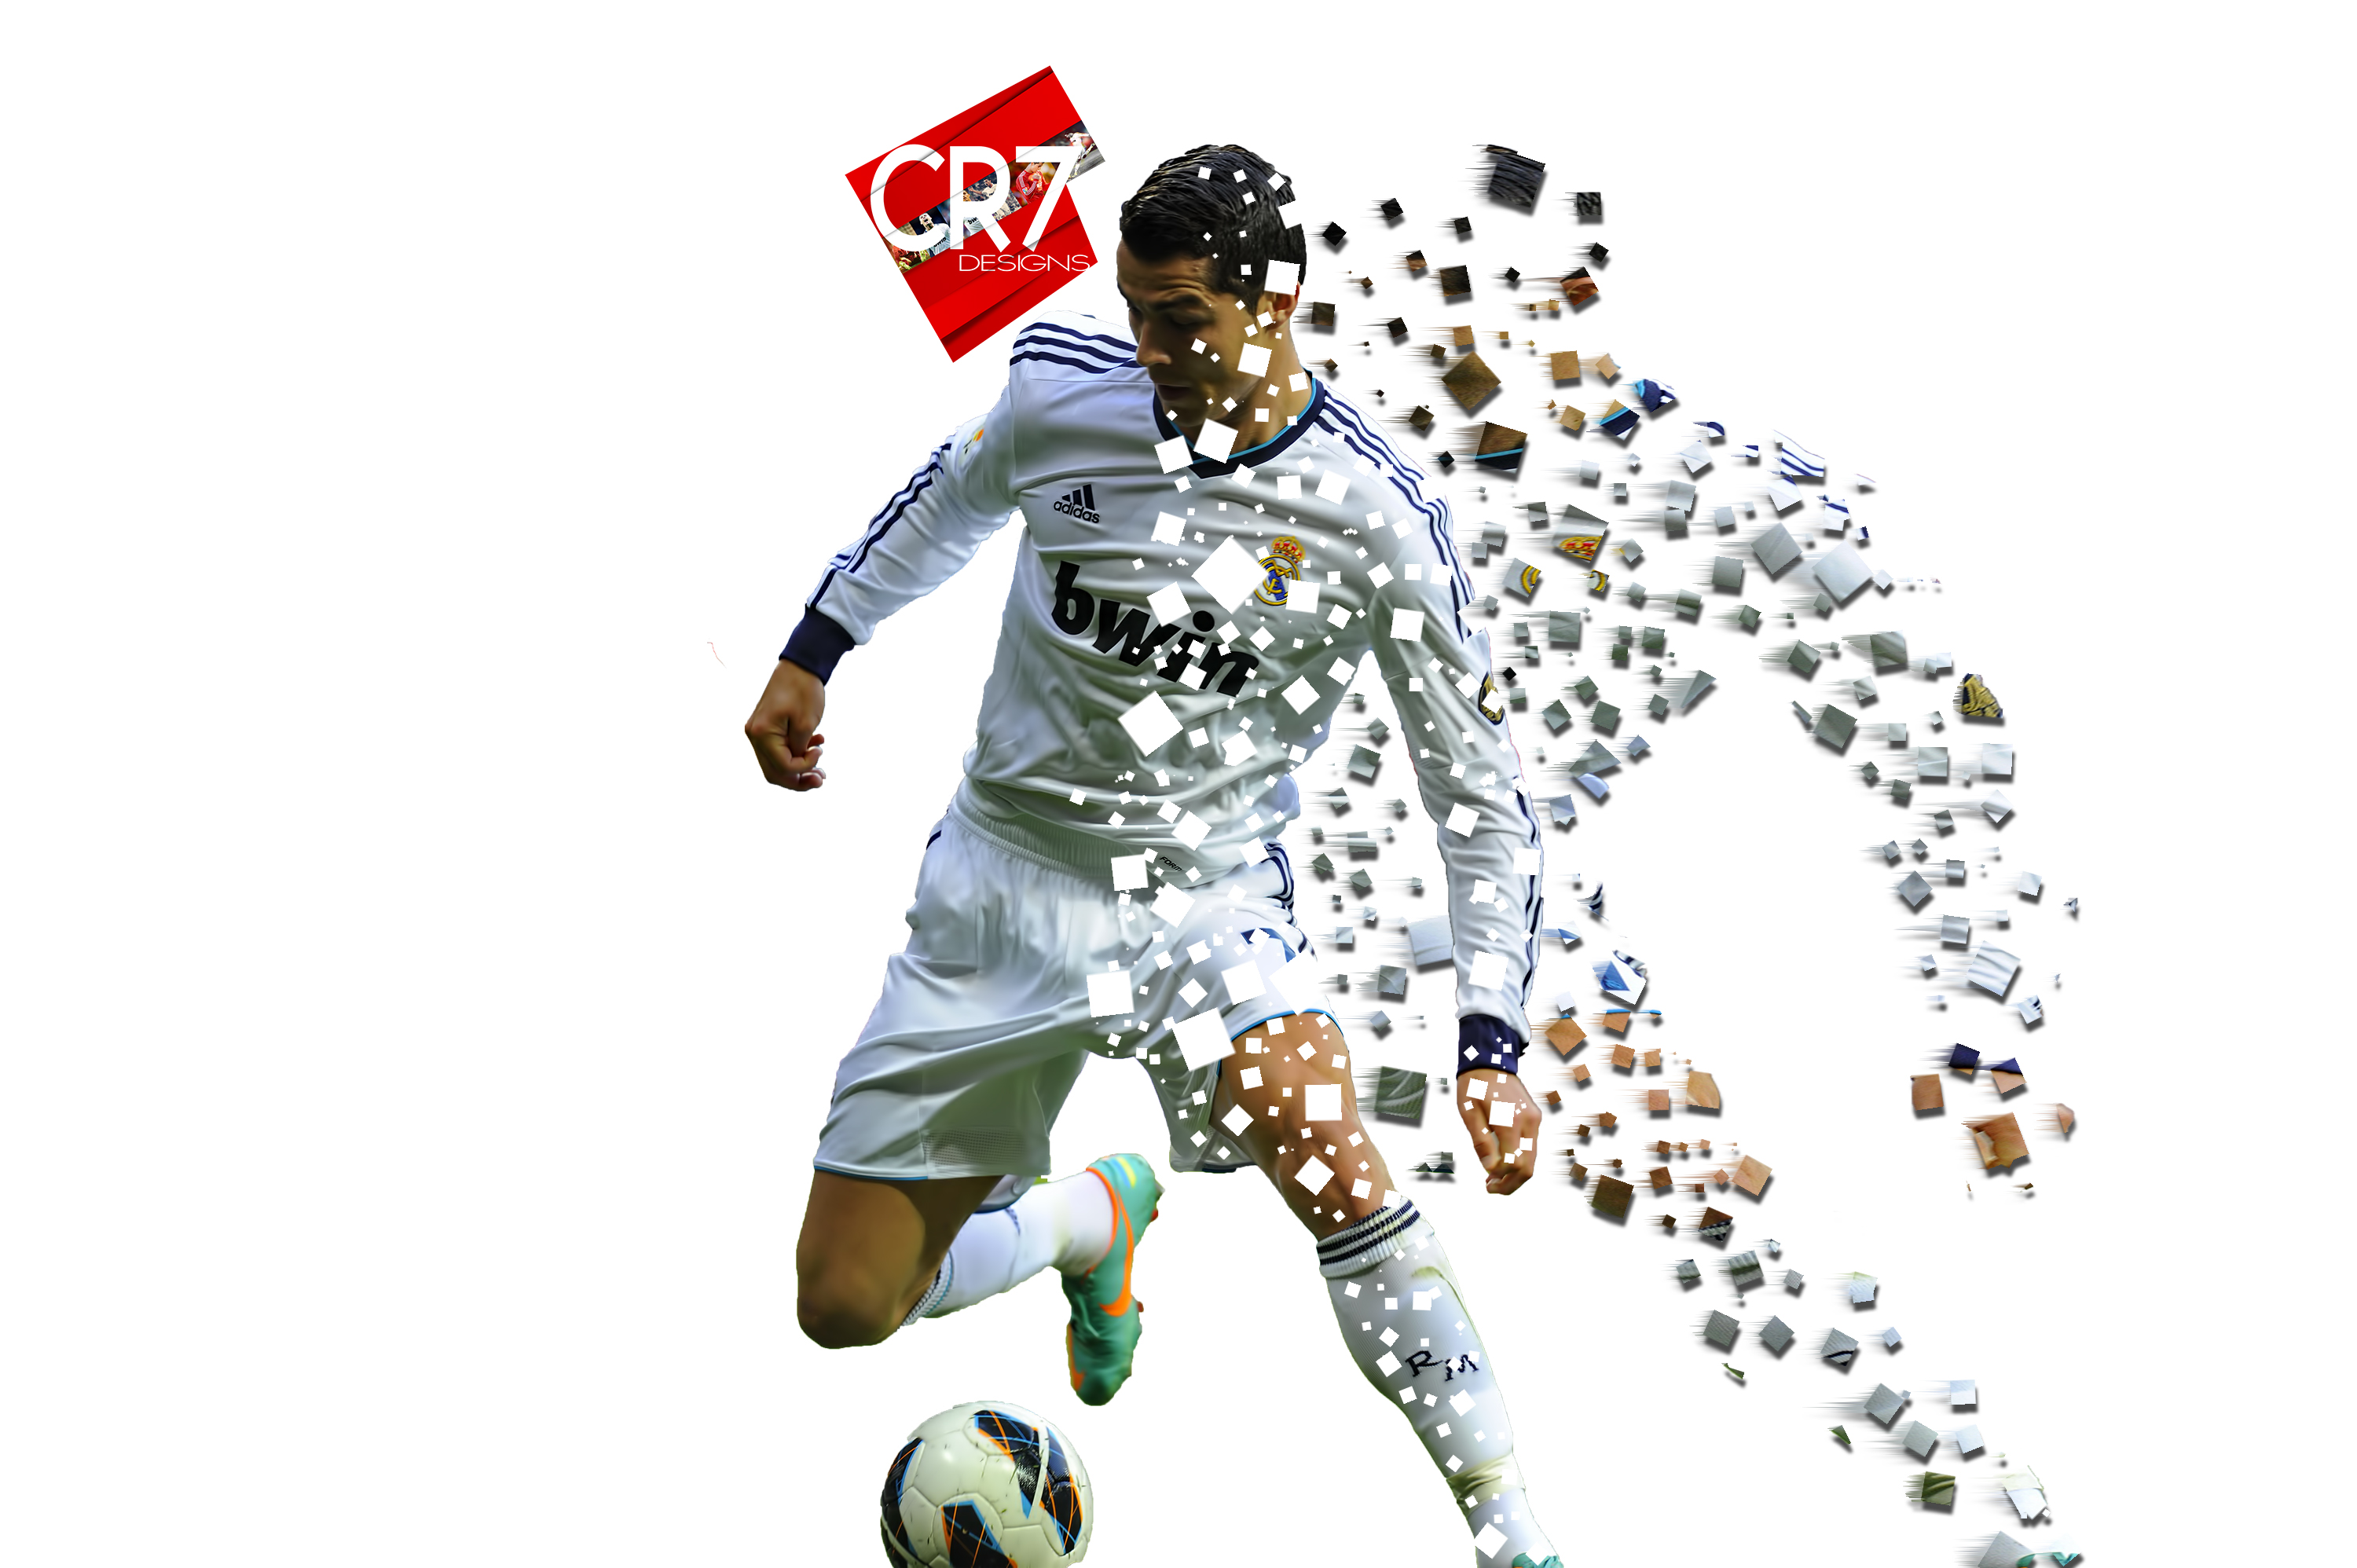 Cristiano Ronaldo Pixel Explosion Effect By Cr7designs On